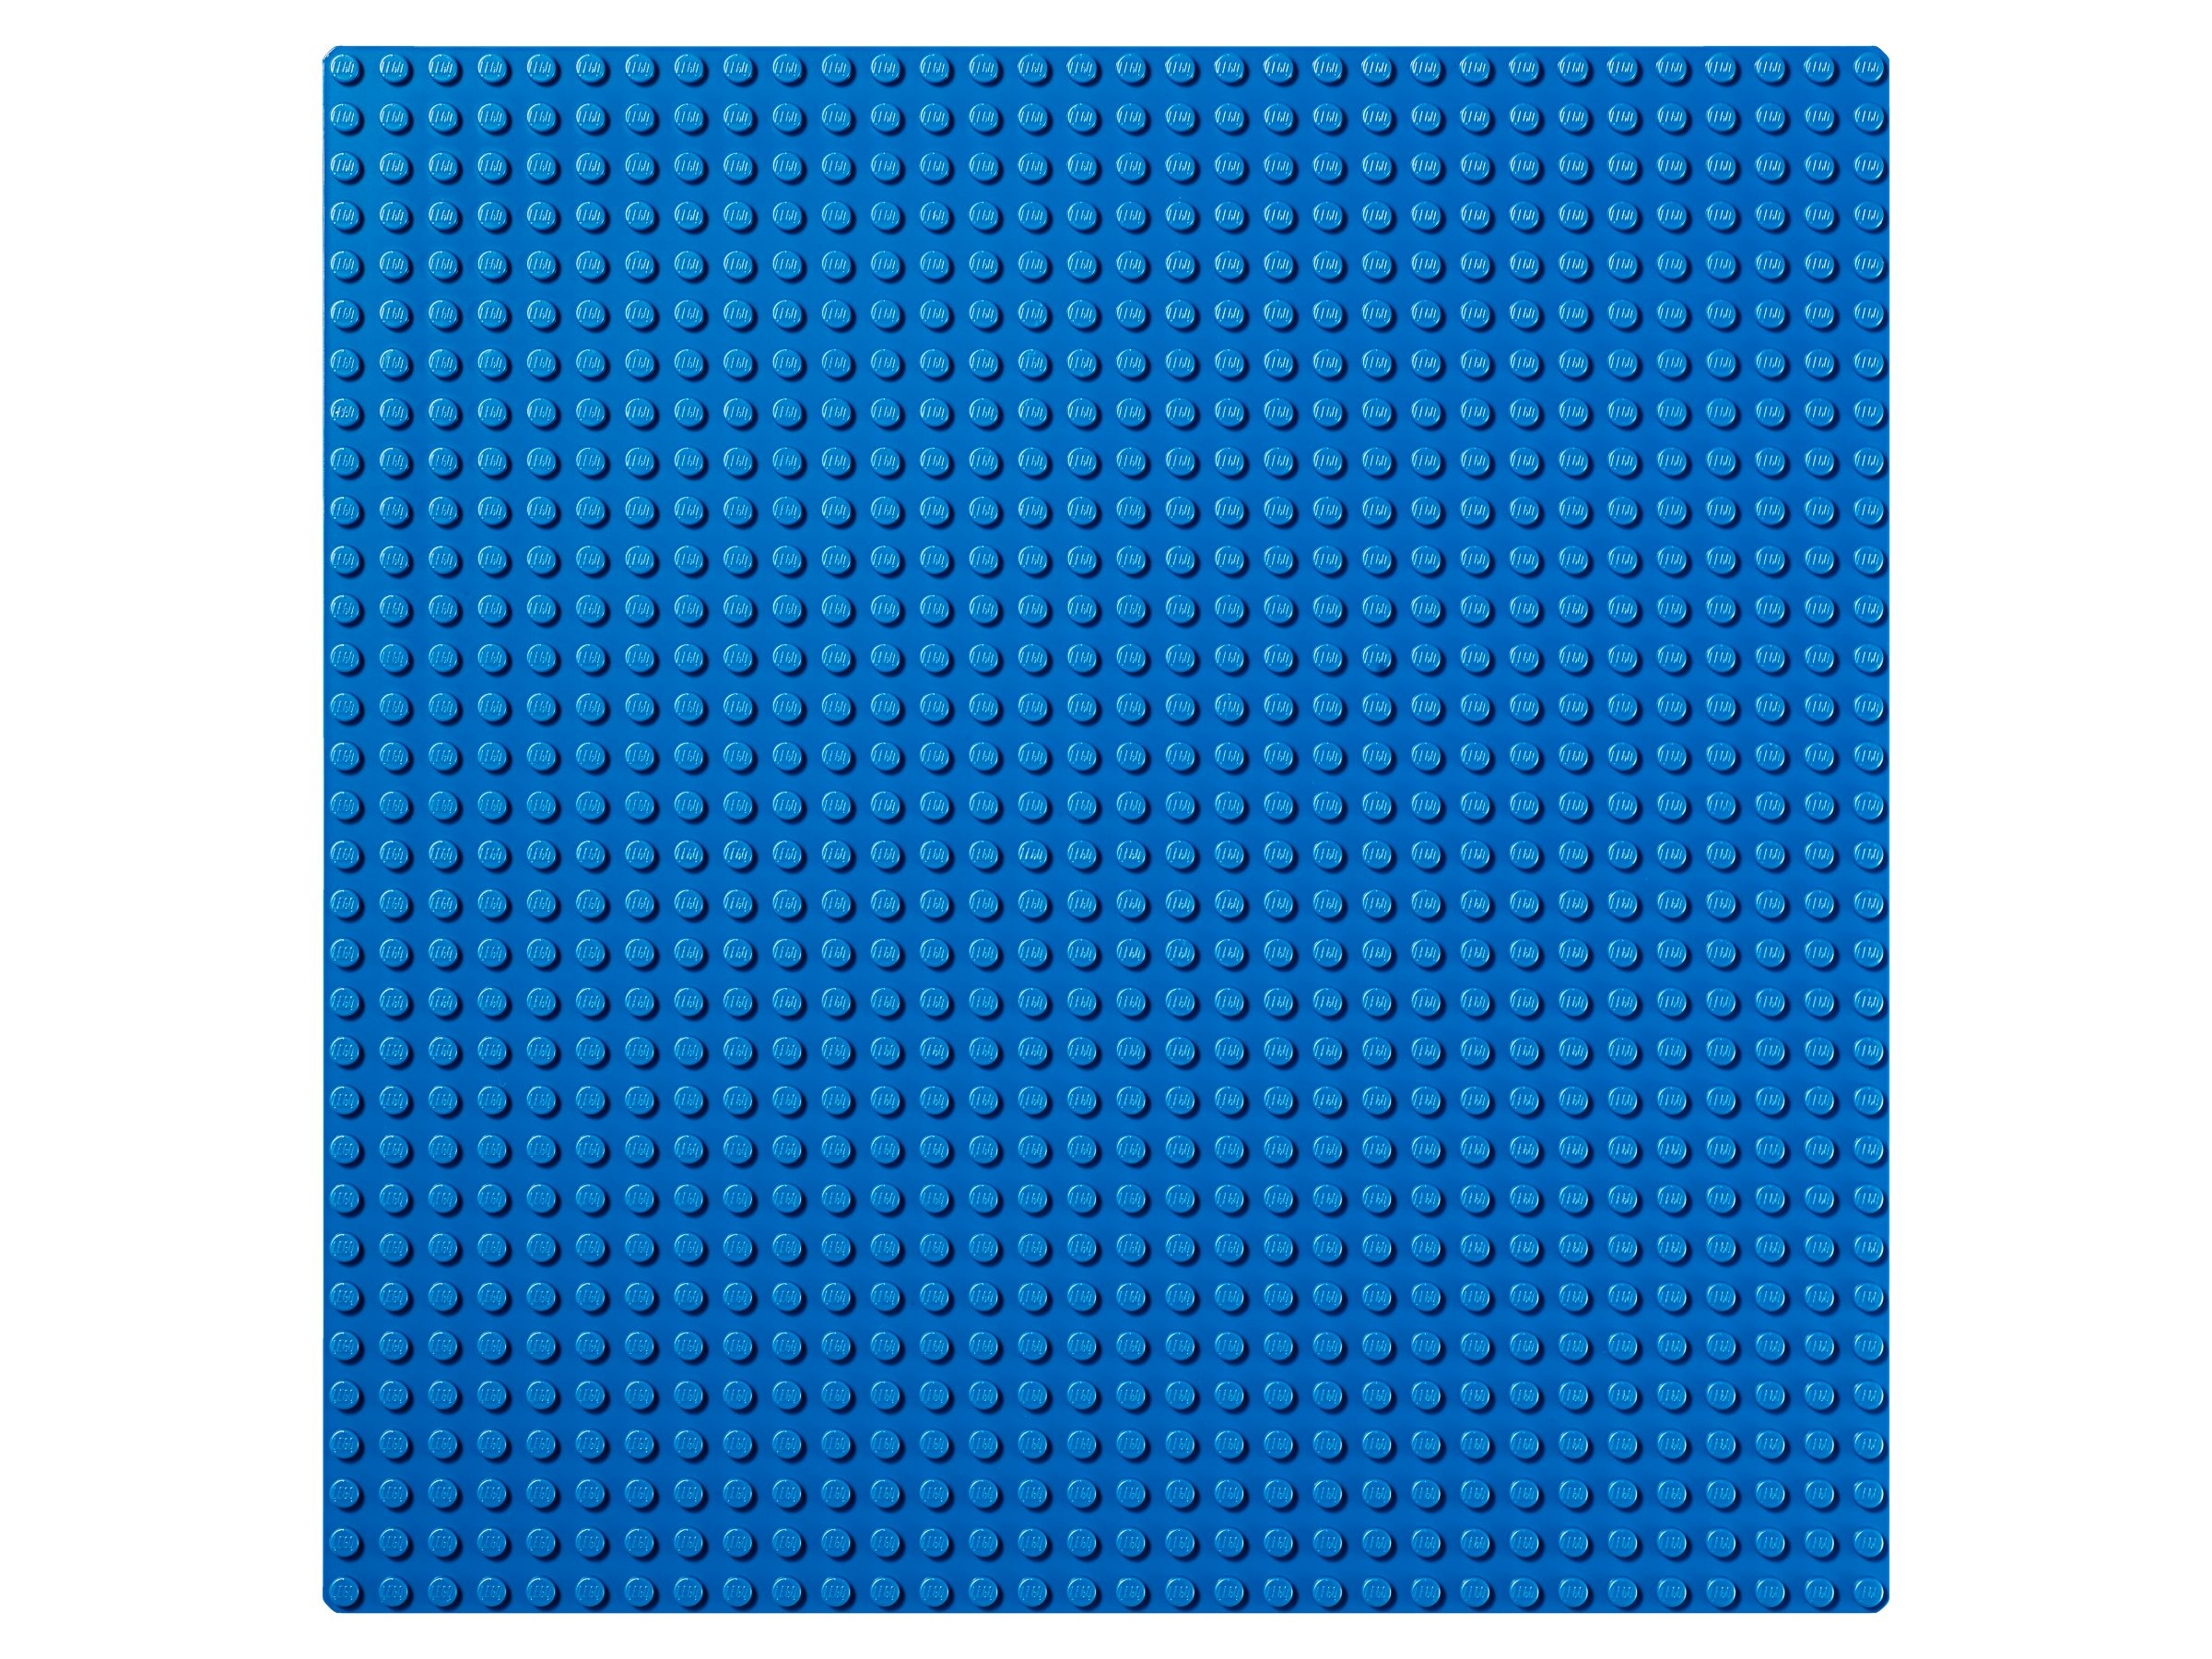 lego 10714 32x32 blaue bauplatte classic 2018 ab 4 99 38 gespart blue baseplate. Black Bedroom Furniture Sets. Home Design Ideas